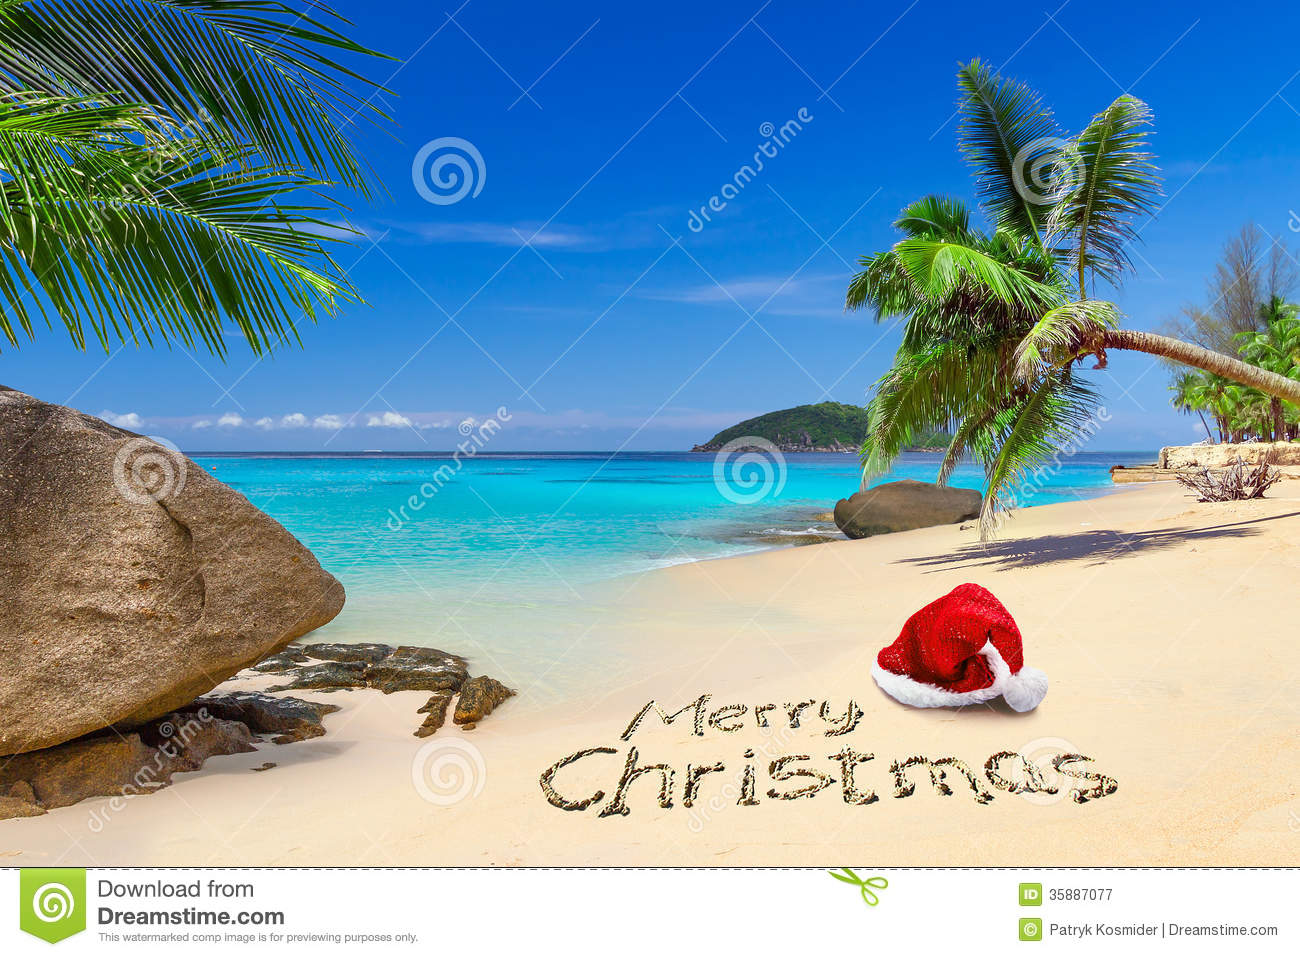 download merry christmas from the tropical beach stock image image of sand relax - Merry Christmas Beach